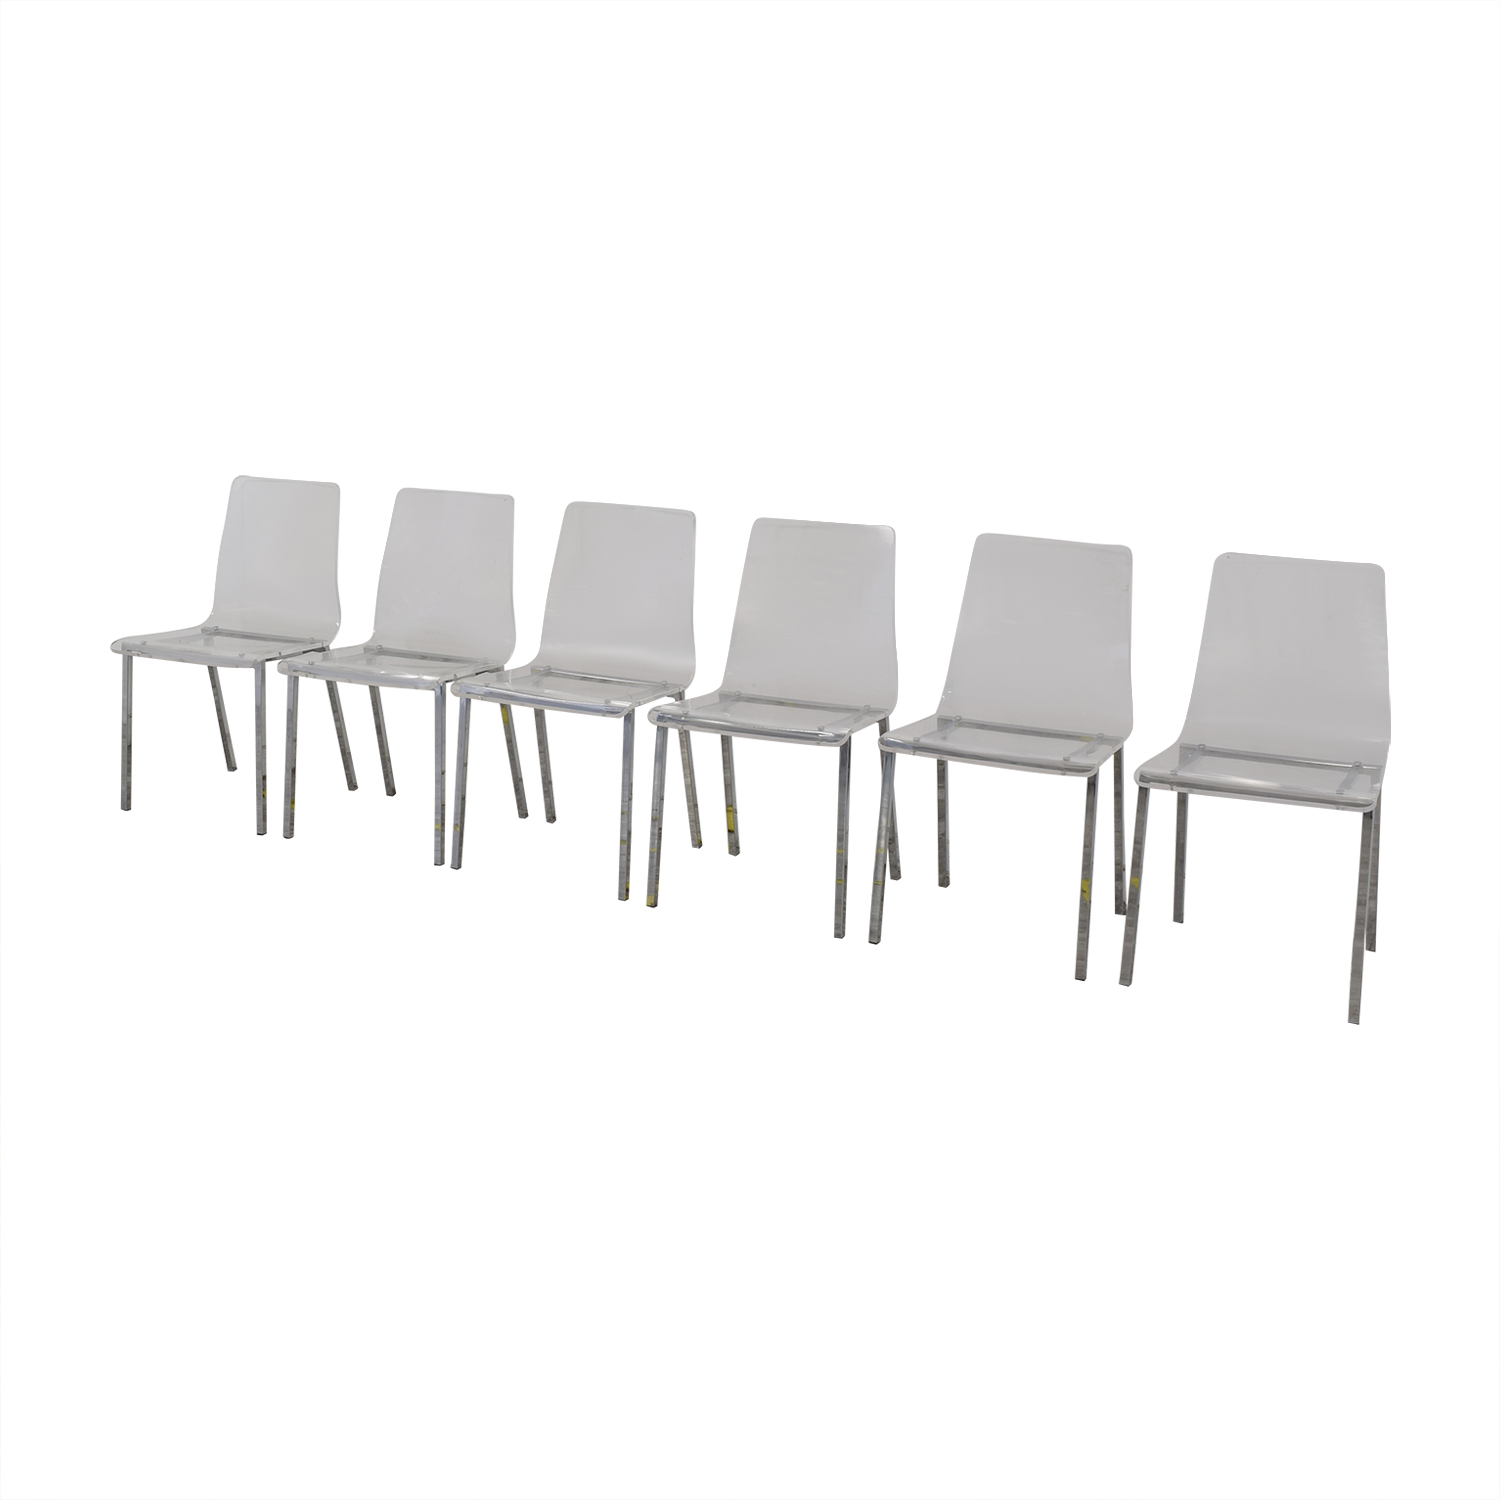 CB2 CB2 Acrylic Vapor Dining Chairs used